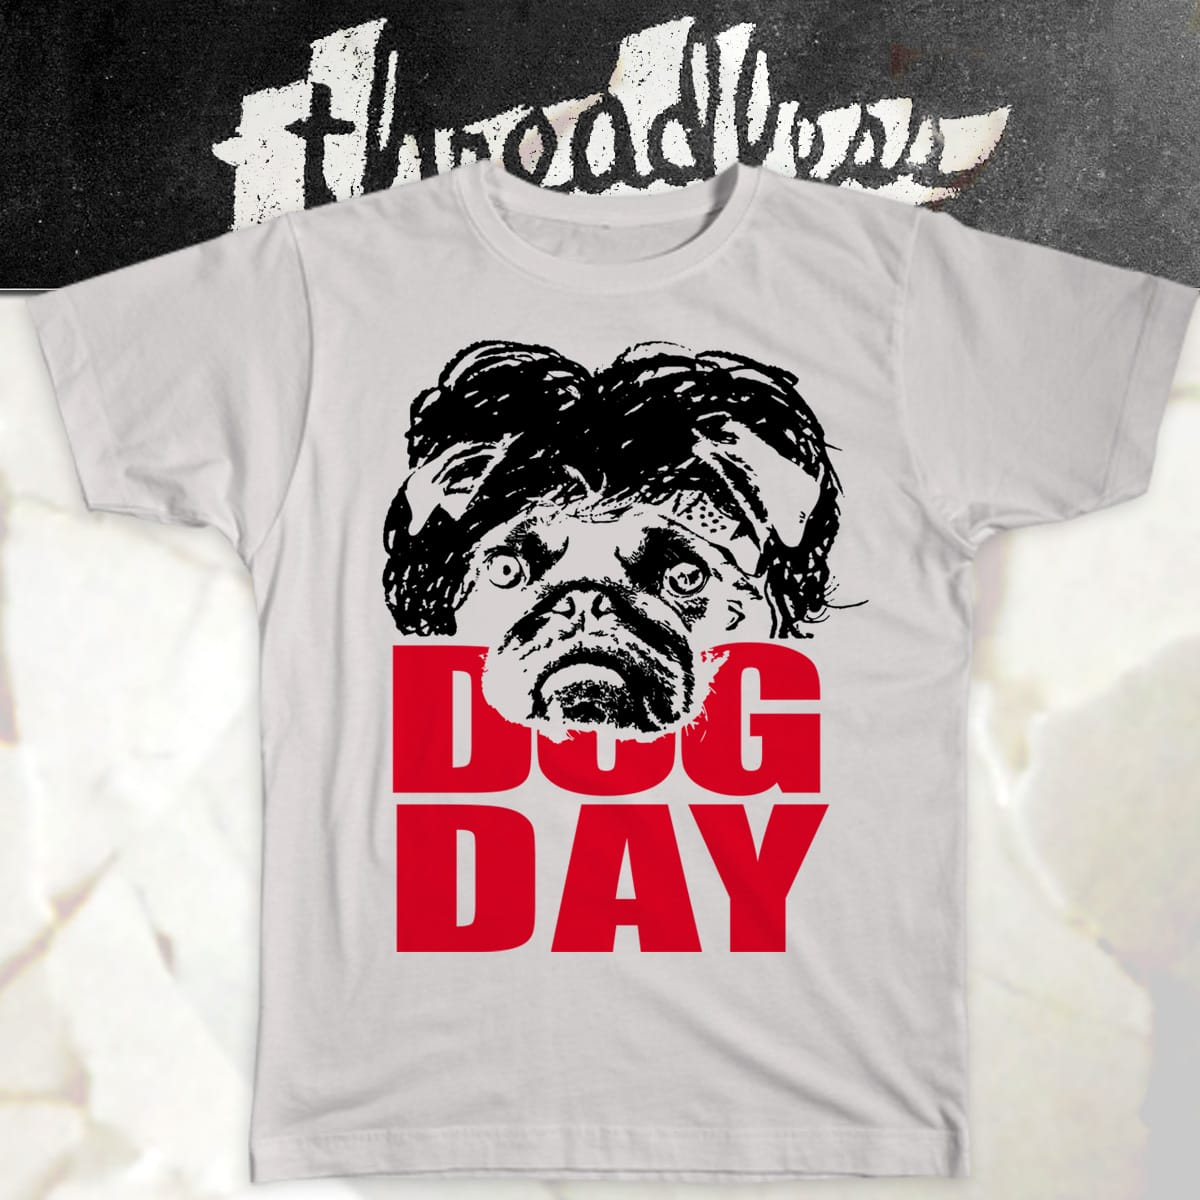 DOG DAY by coffeecontrolled on Threadless